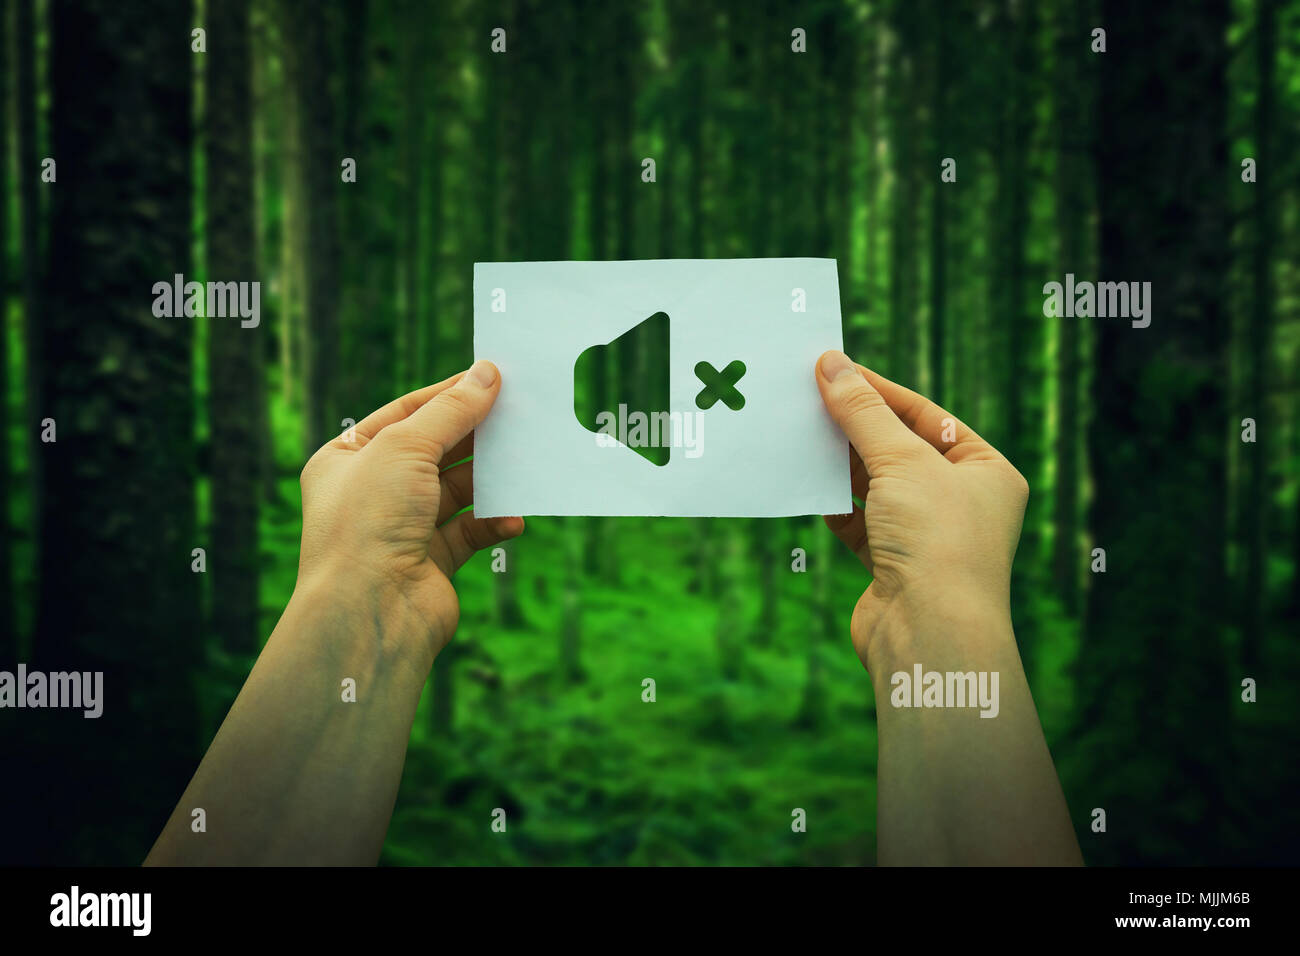 Close up of woman hands holding a paper sheet with silent mode icon, over green forest background. Enjoy the silence of the woods. - Stock Image